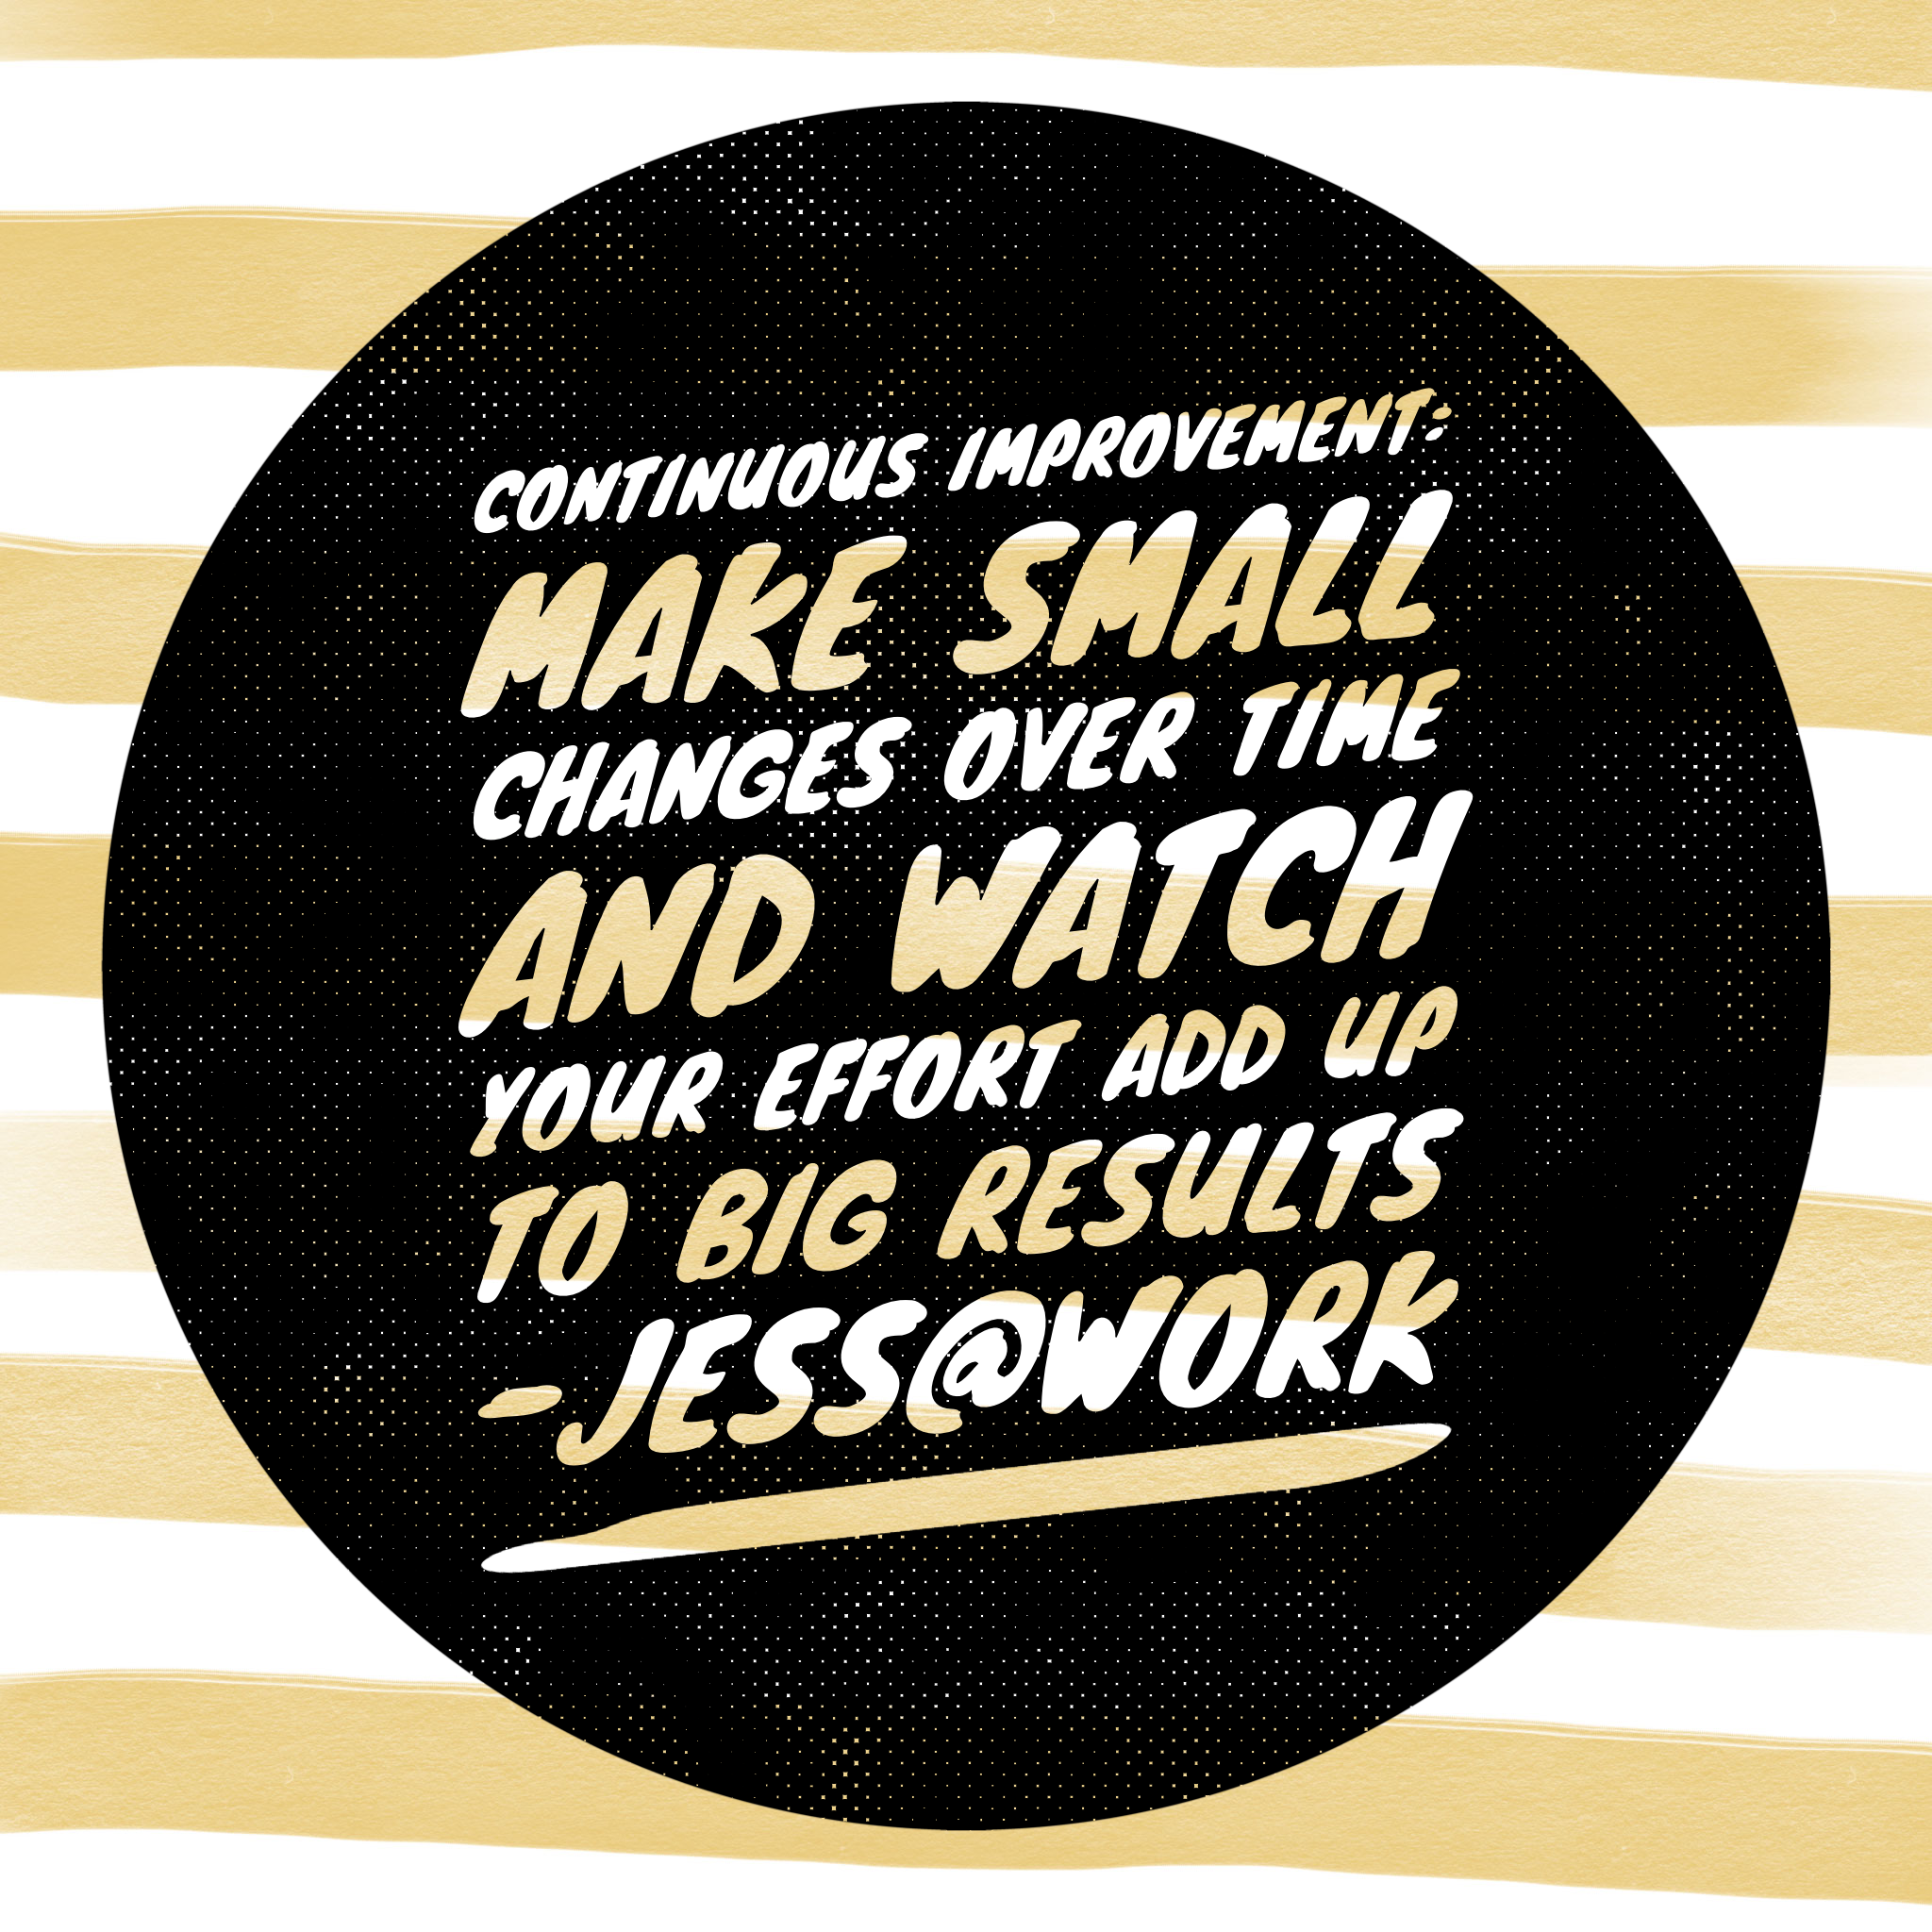 Continuous improvement make small changes over time and watch your changes add up to big results